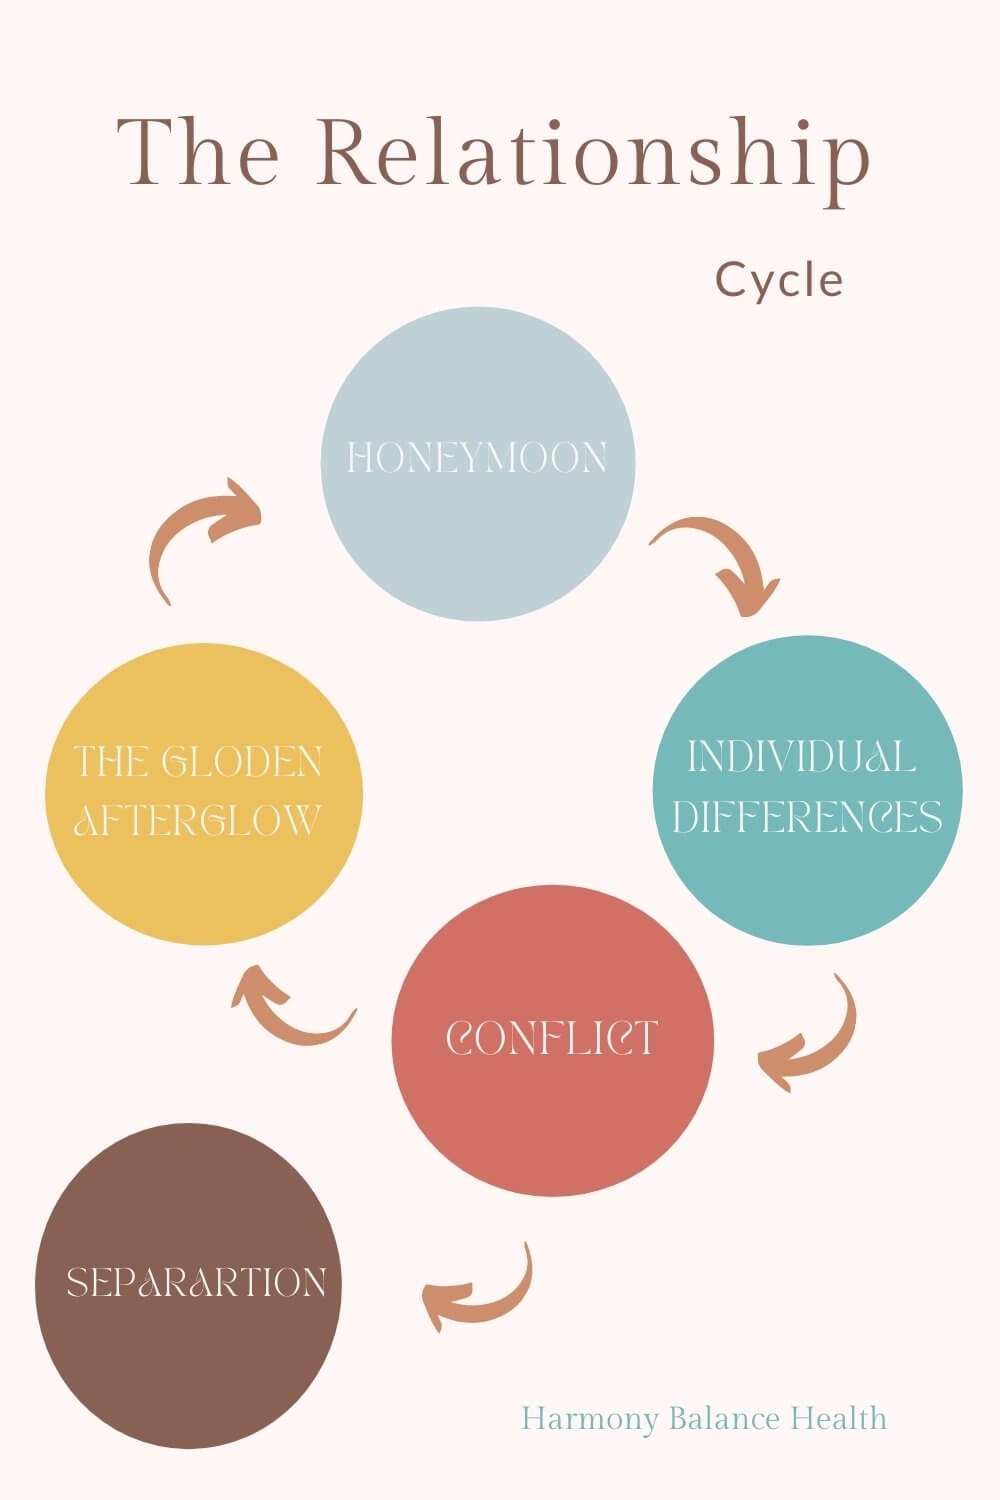 The cycle of a relationship